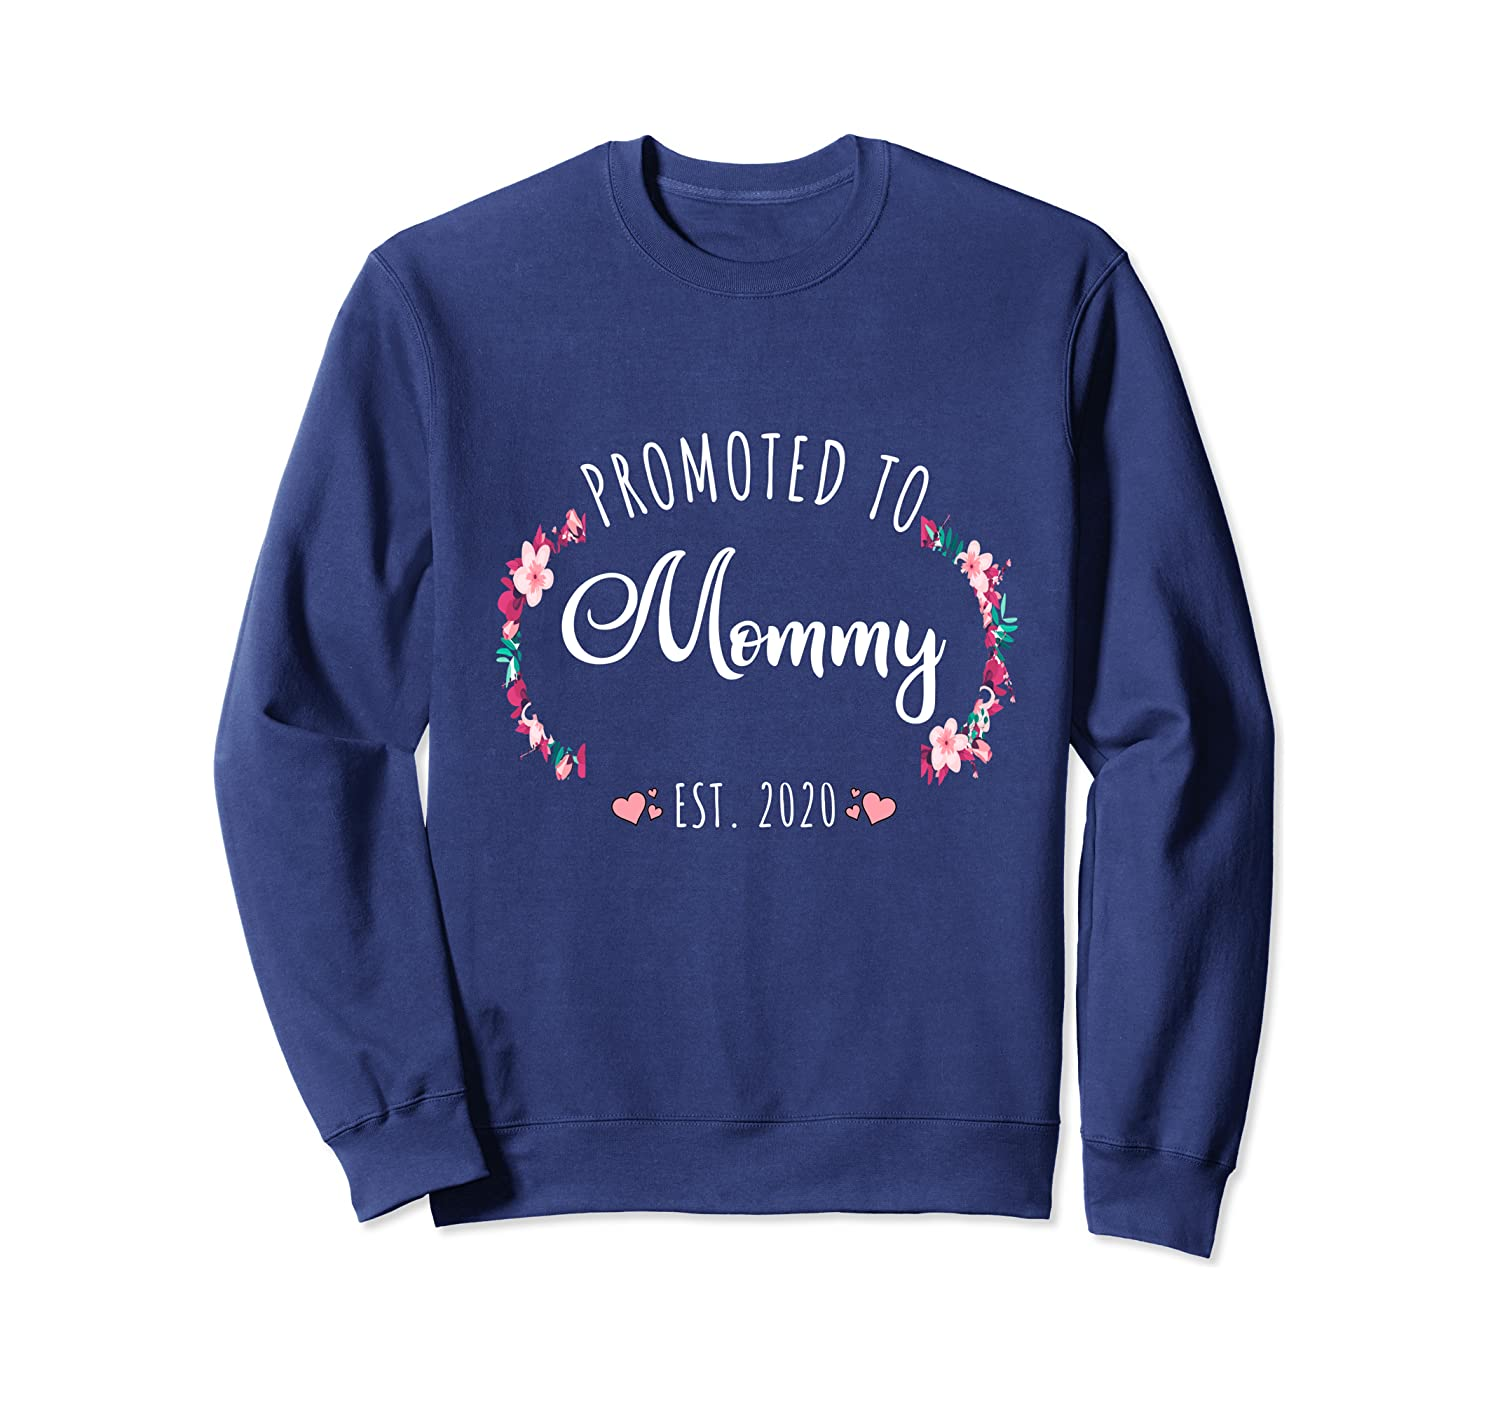 New Mom Gift 2020 Sweatshirt Promoted To Mommy Est